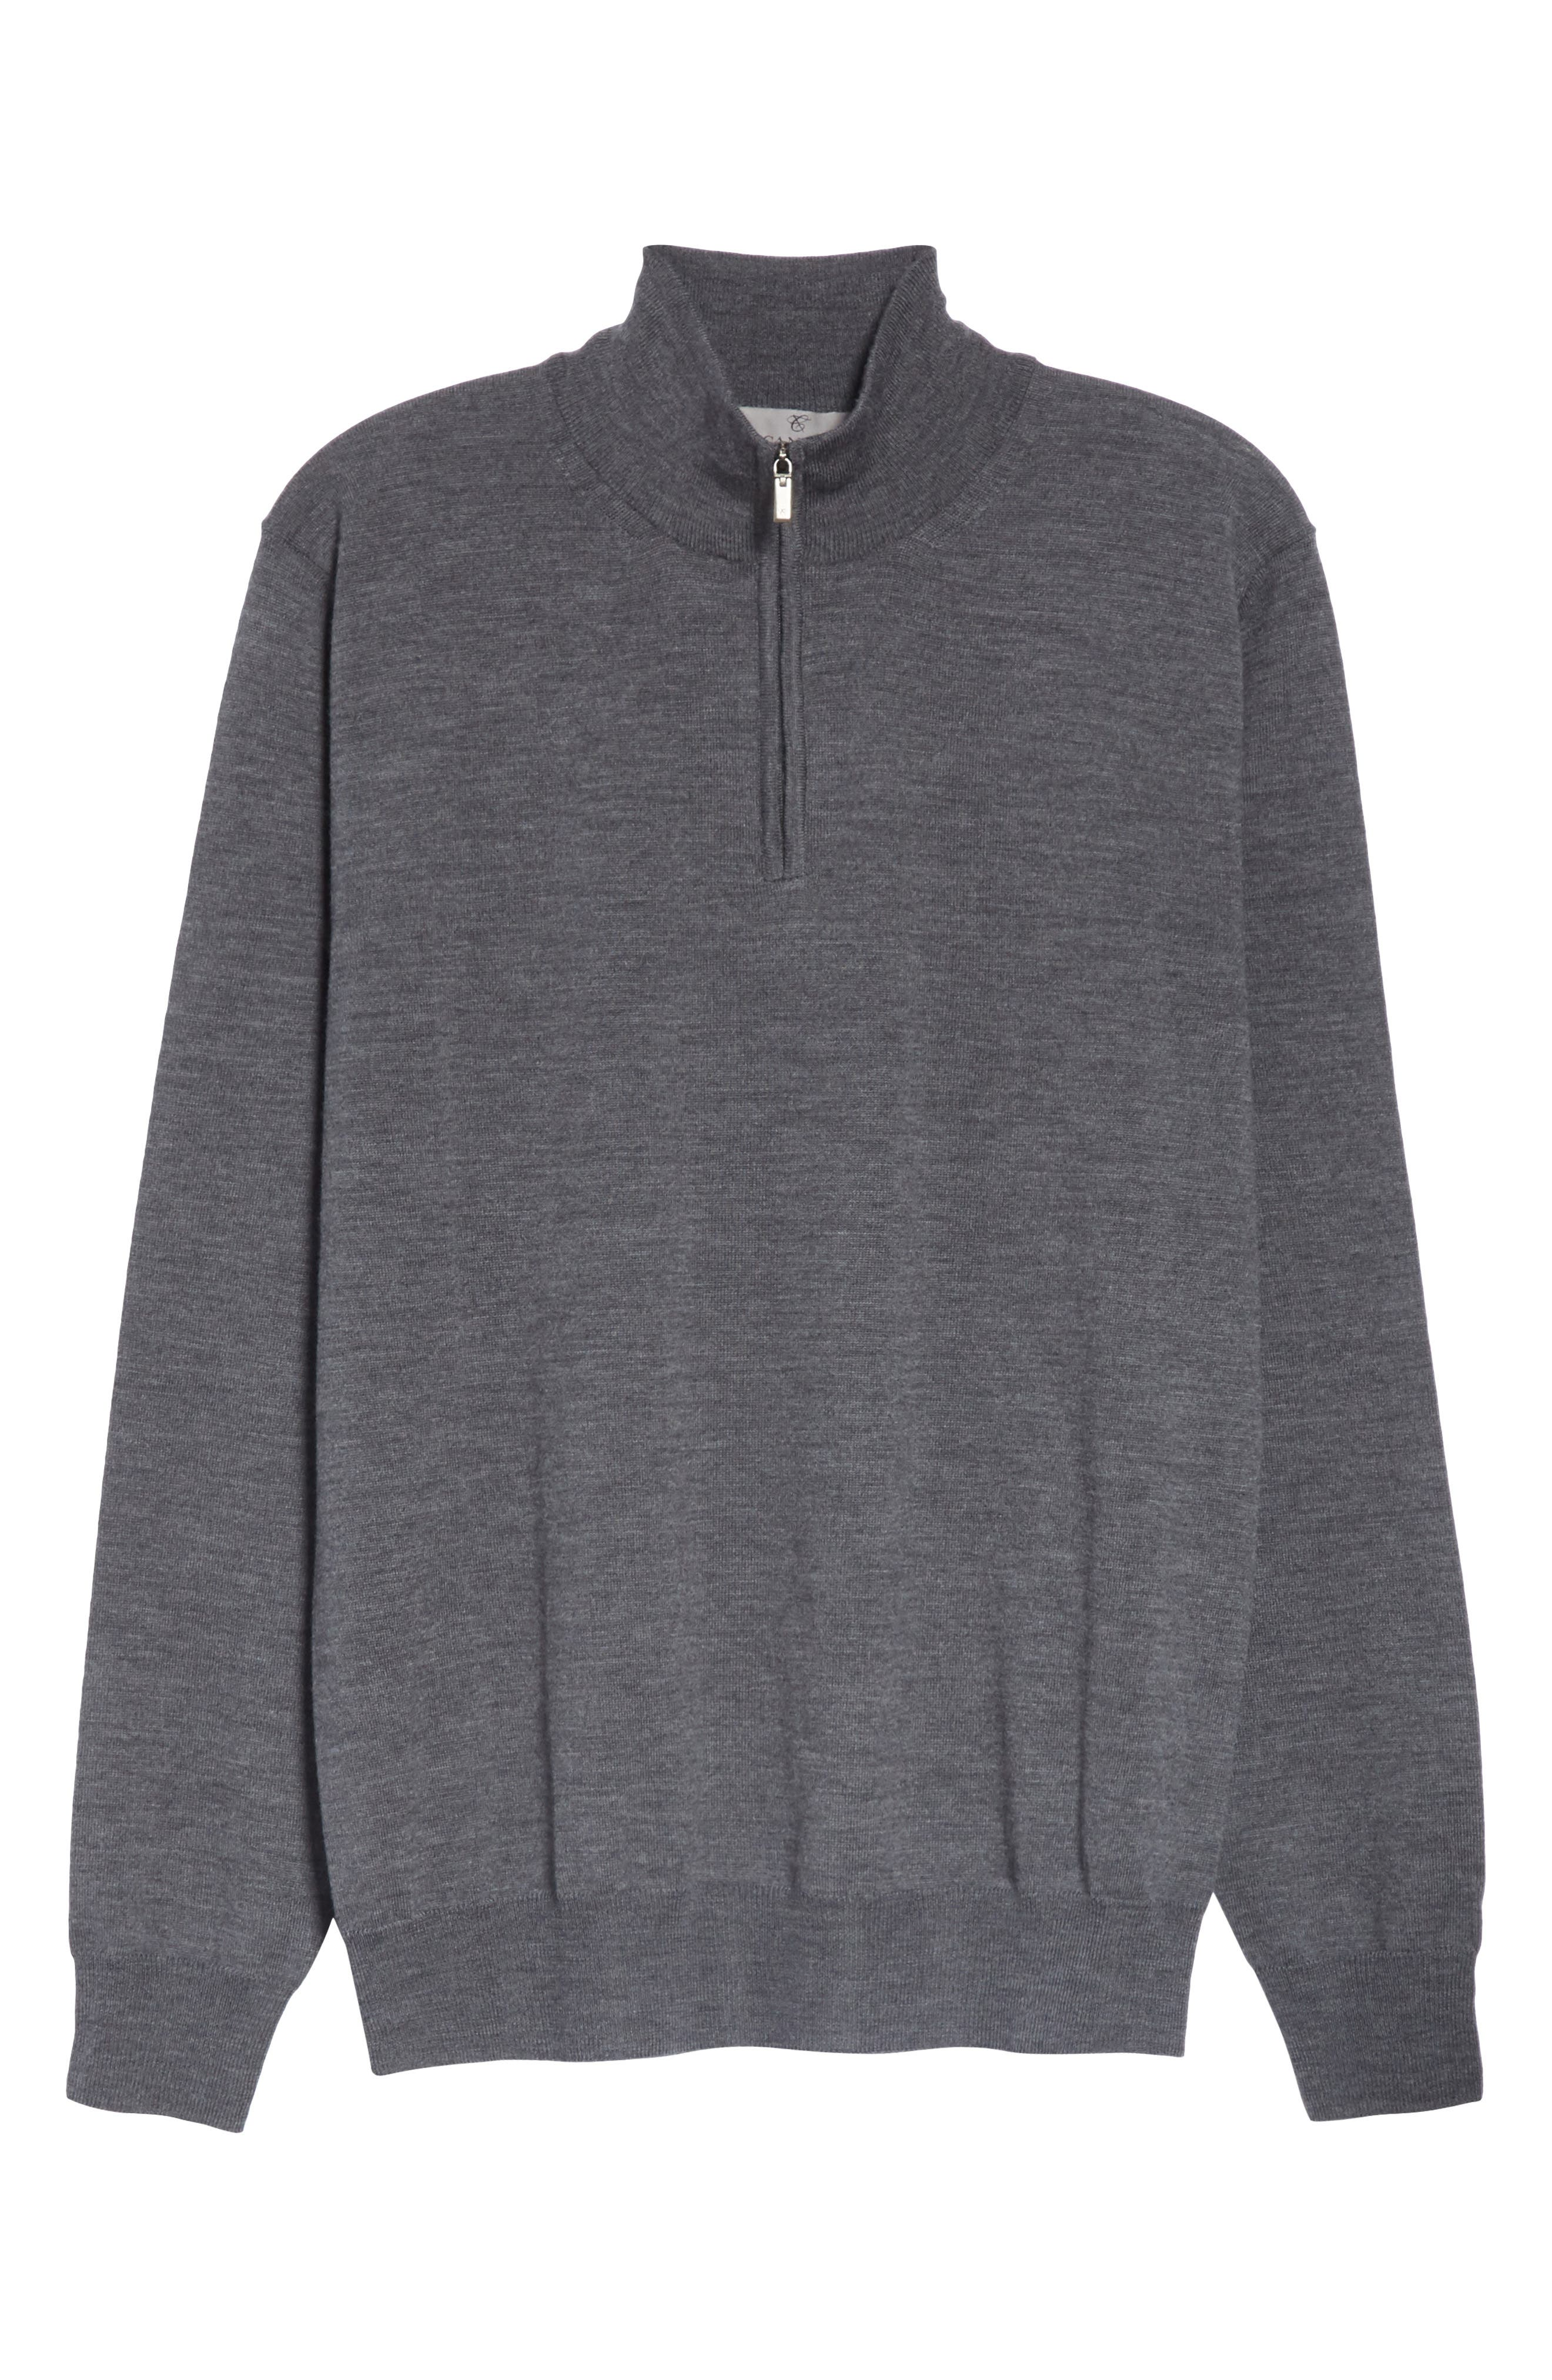 Wool Quarter Zip Pullover,                             Alternate thumbnail 6, color,                             CHARCOAL